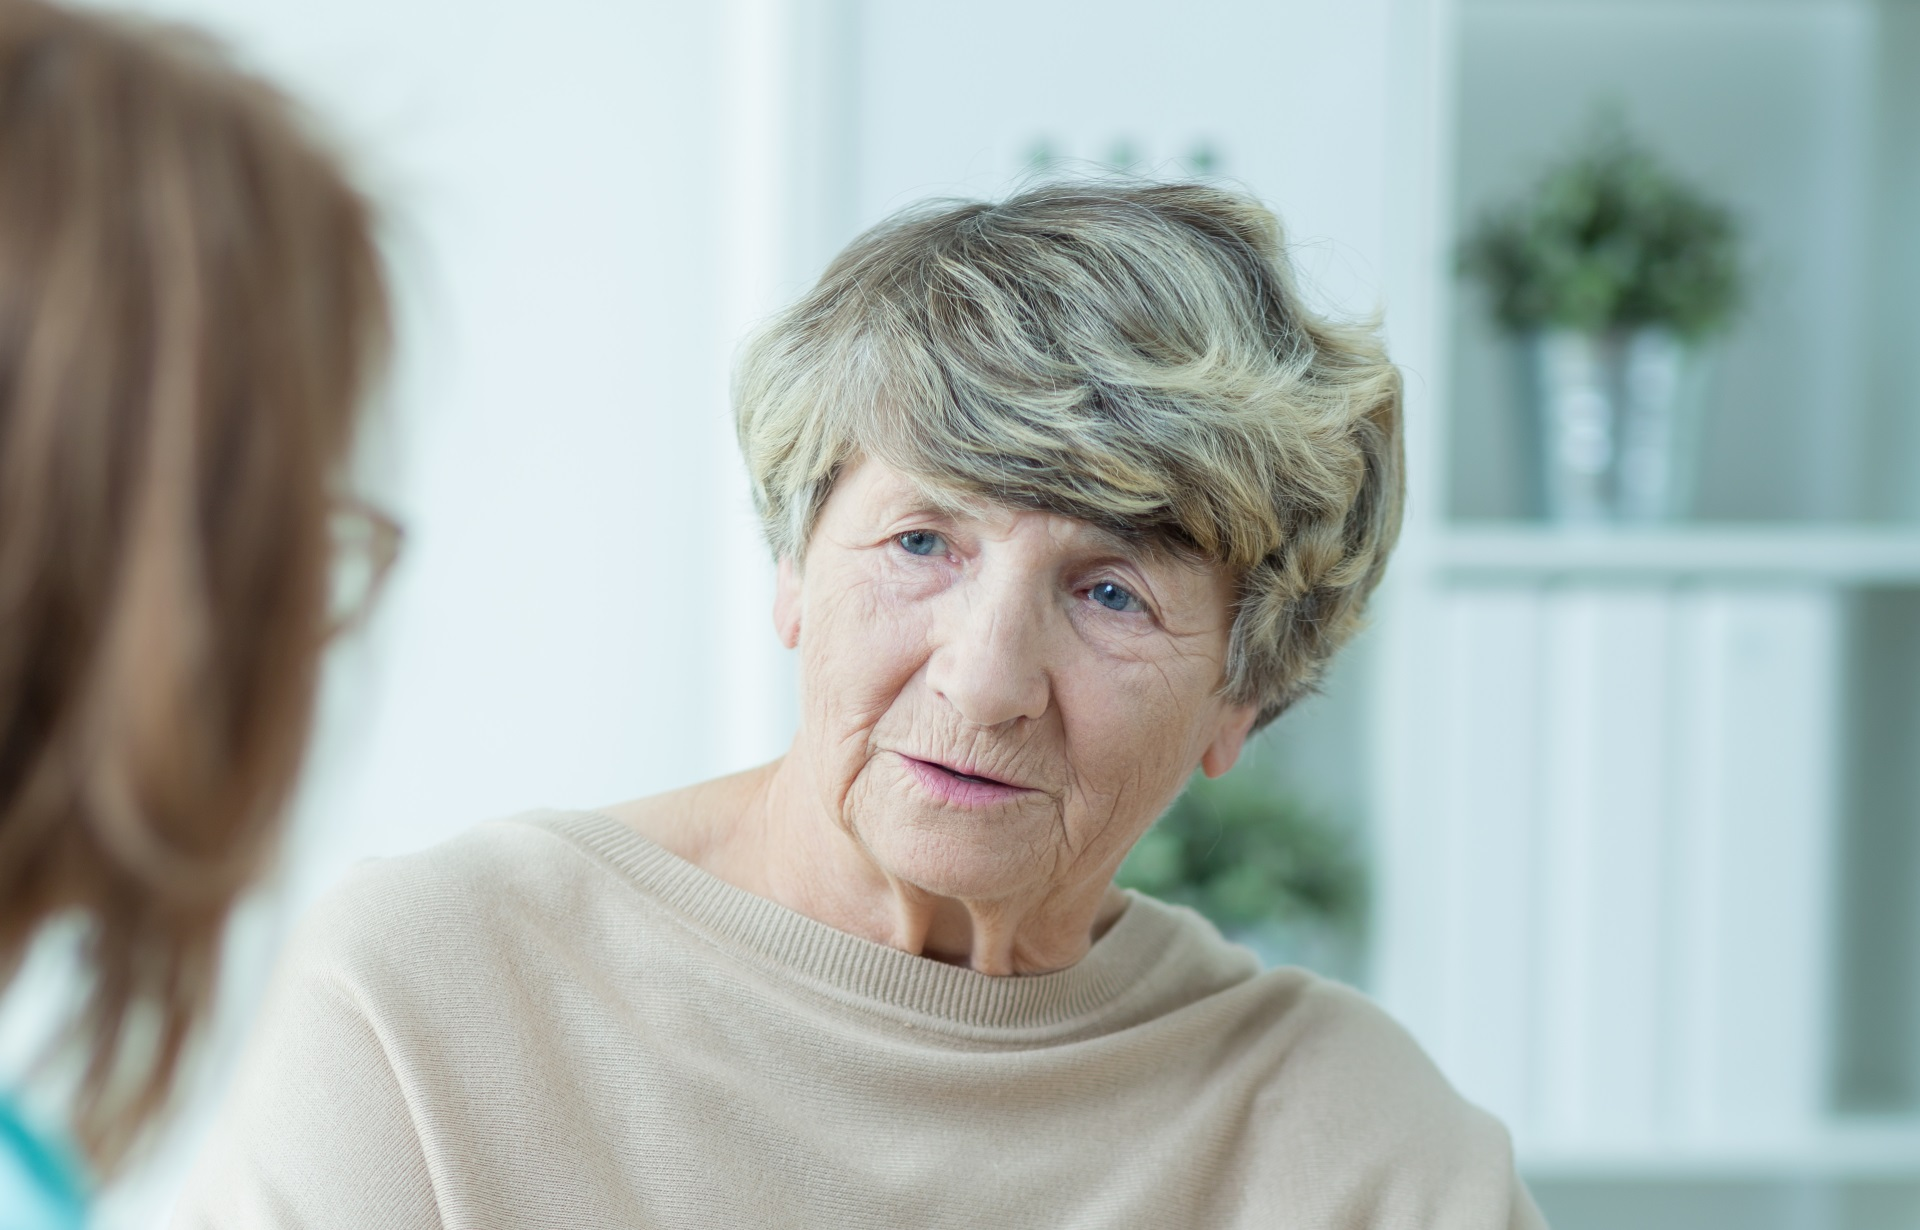 An elderly woman engaged in serious conversation with a female healthcare provider inside a home setting.